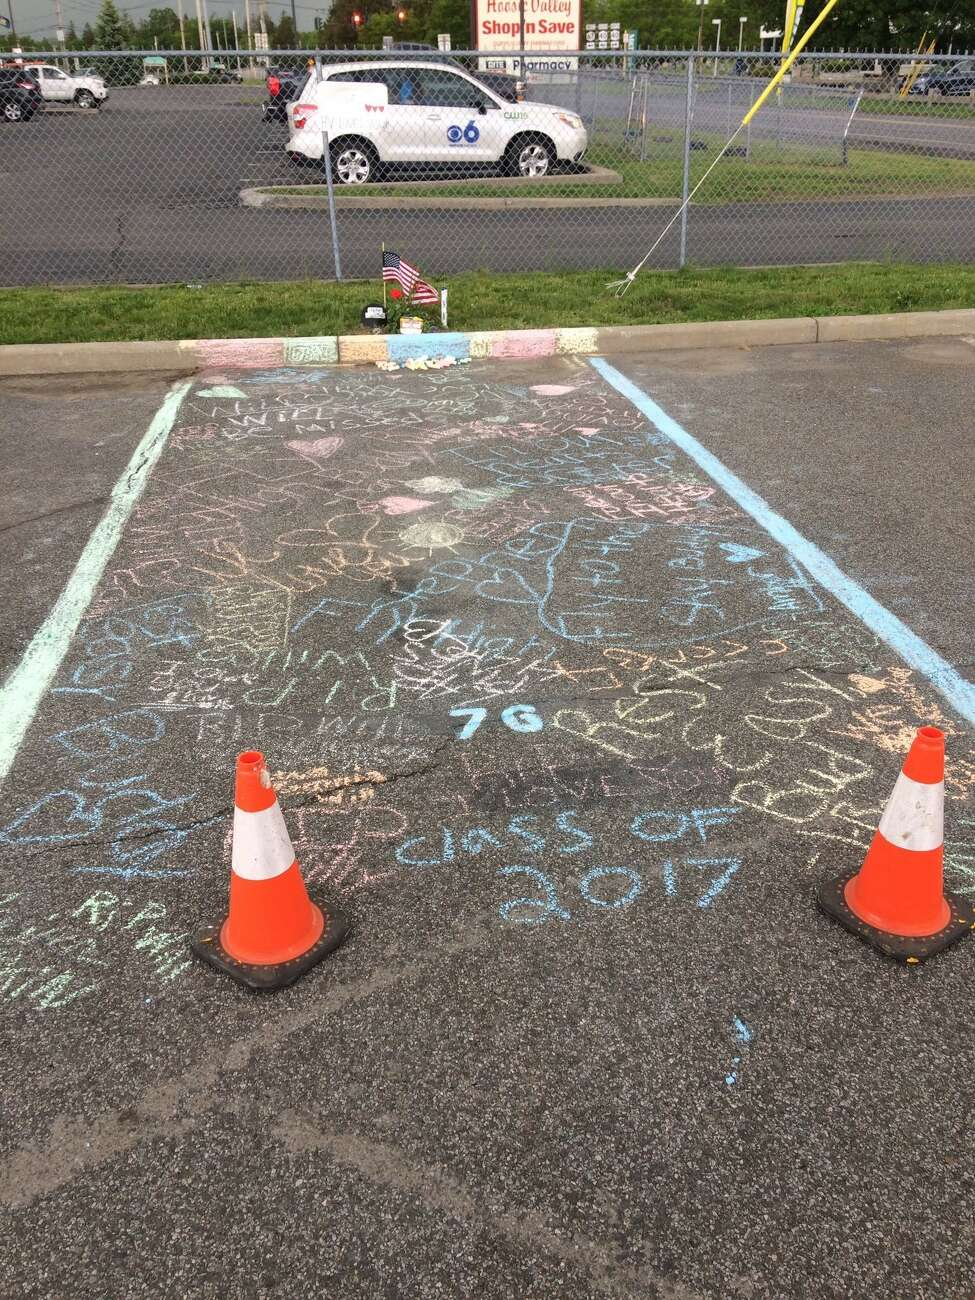 Students at Hoosic Valley High School decorated senior William Rowe's parking spot with messages of mourning after learning the 17 year old had died in a car crash on May 31, 2017 in Schaghticoke. (Courtesy of Trever Rose)